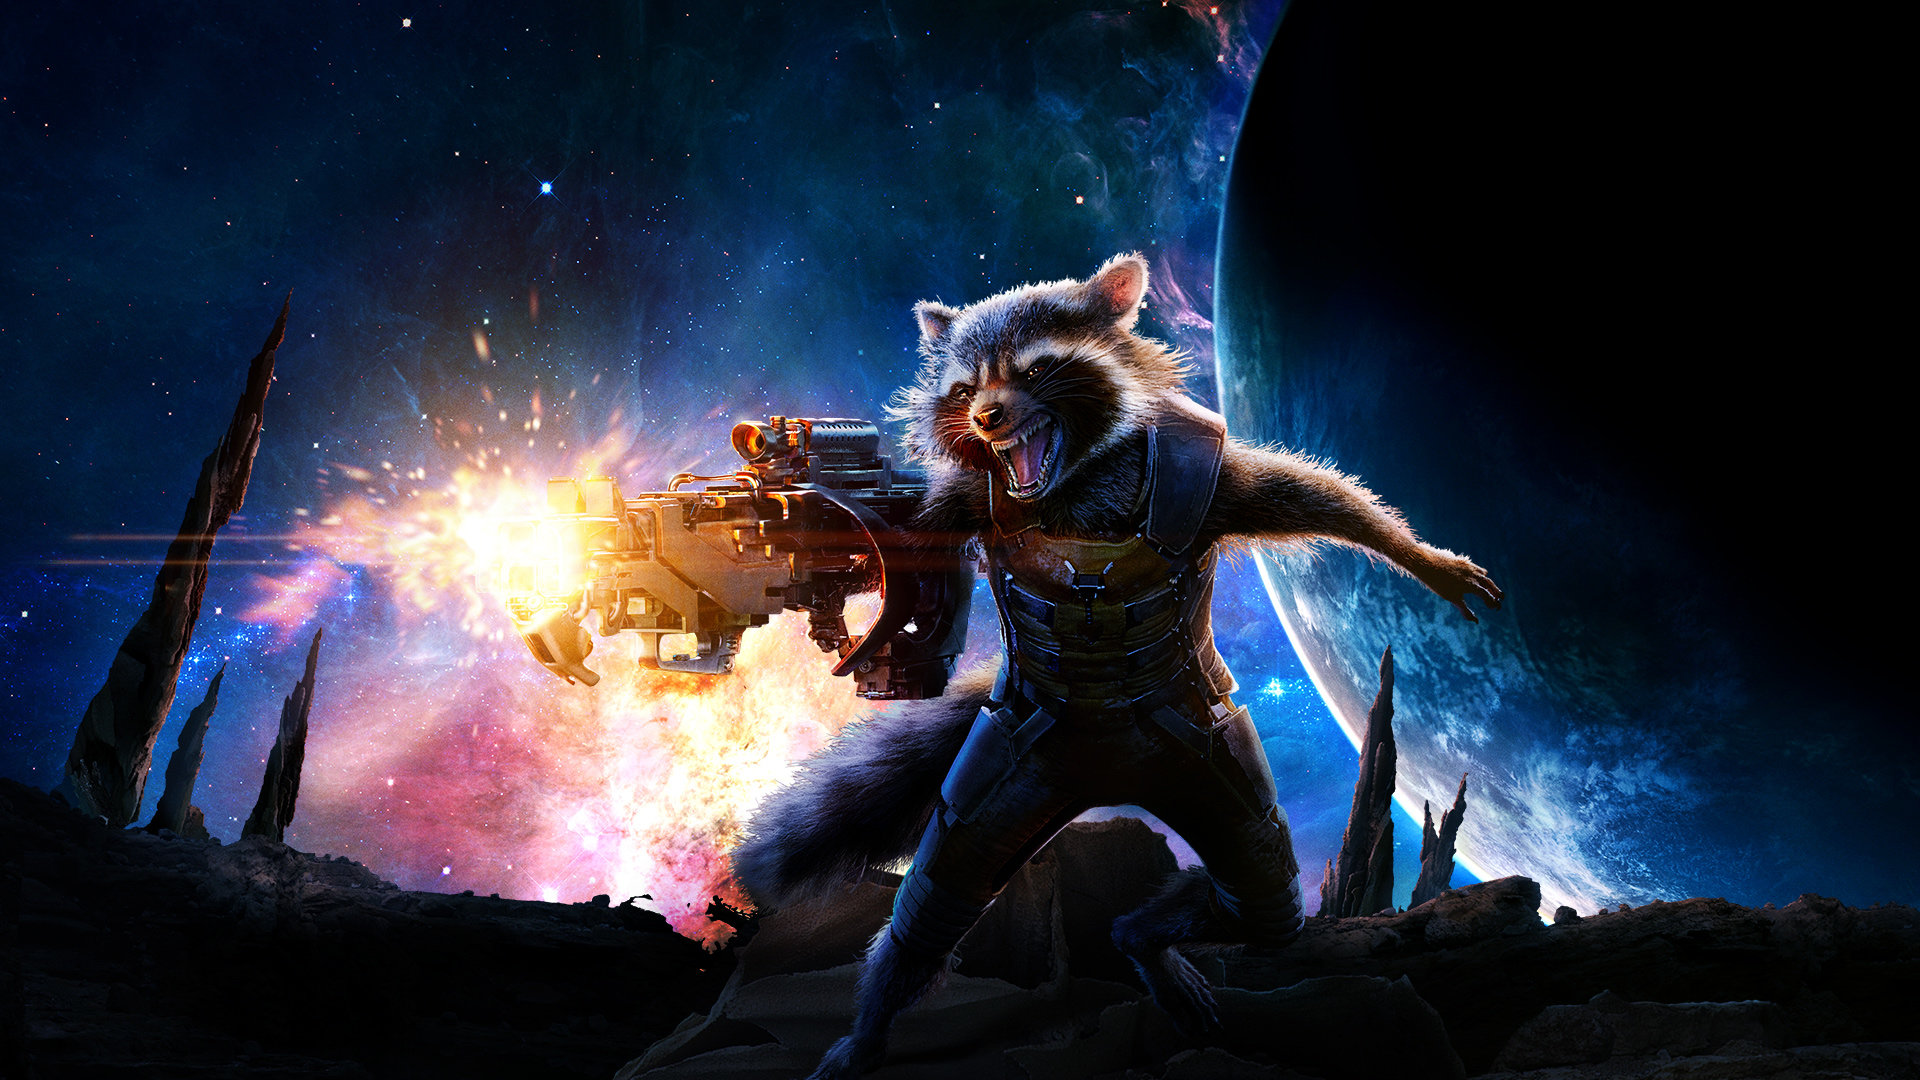 Guardians Of The Galaxy Hd Wallpaper: Rocket Raccoon Wallpapers 1920x1080 Full HD (1080p